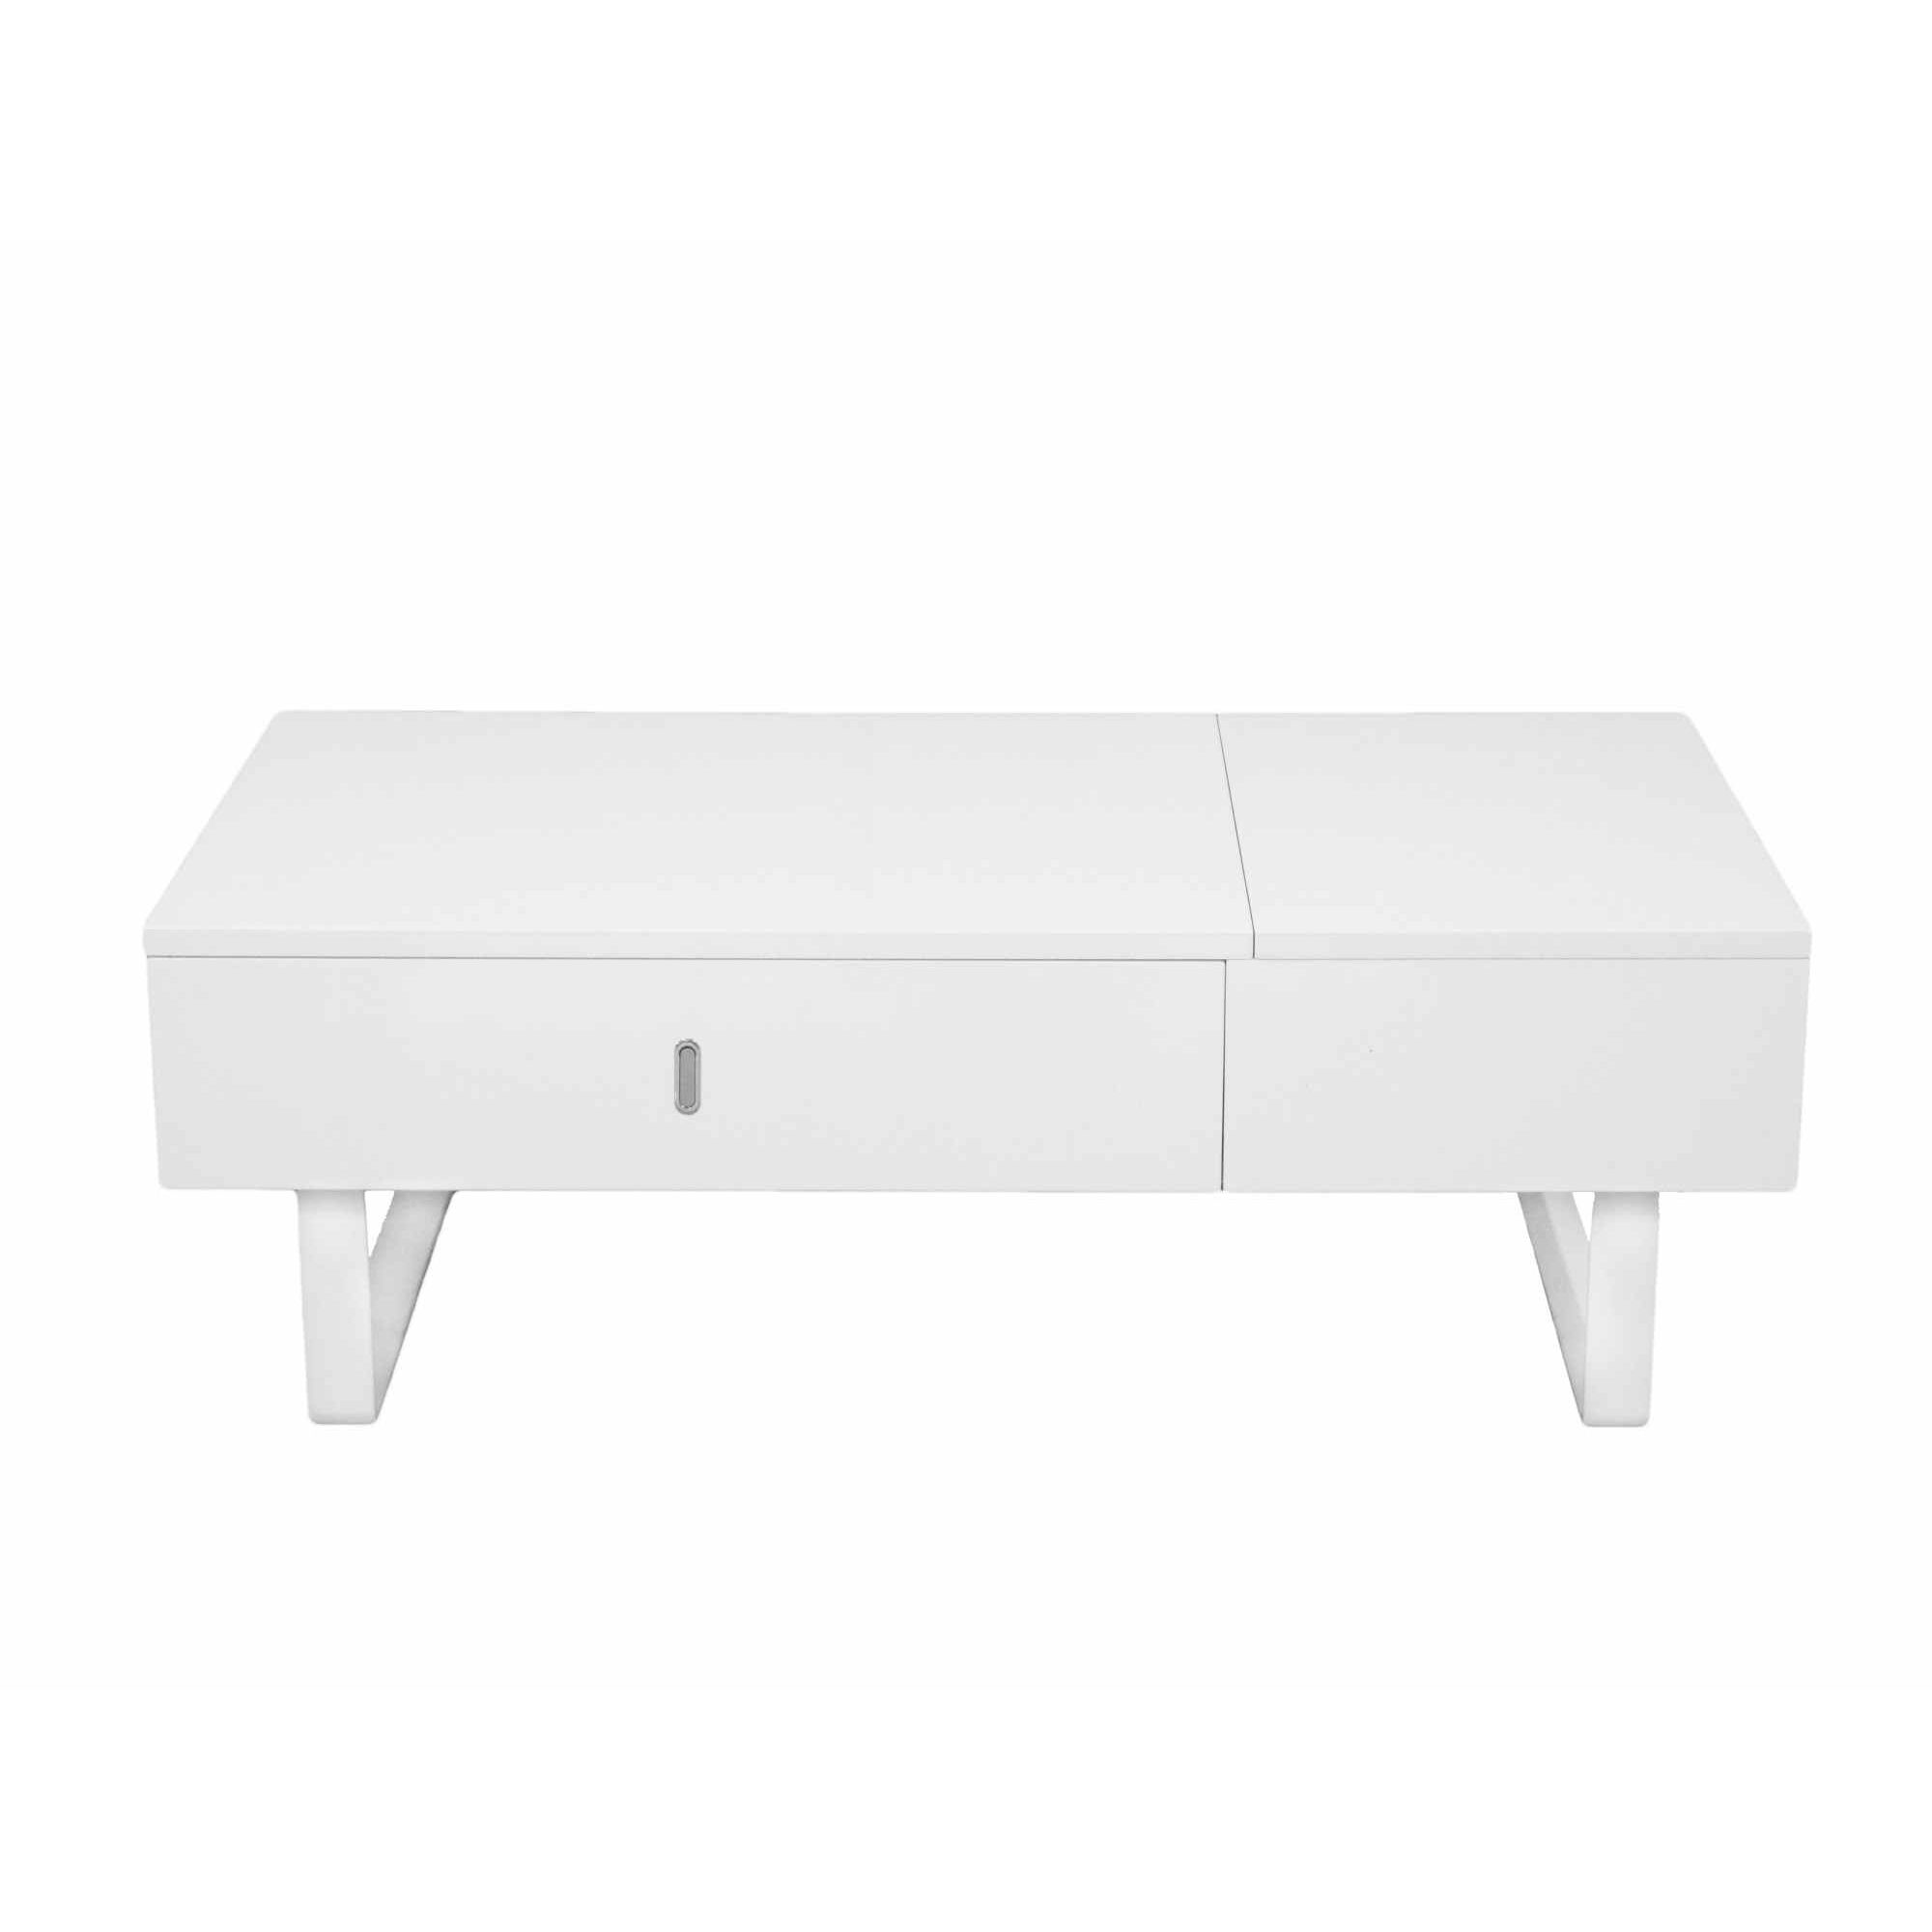 Deco In Paris Table Basse Relevable Multifonction Laque Blanc Tab Blanc Multi